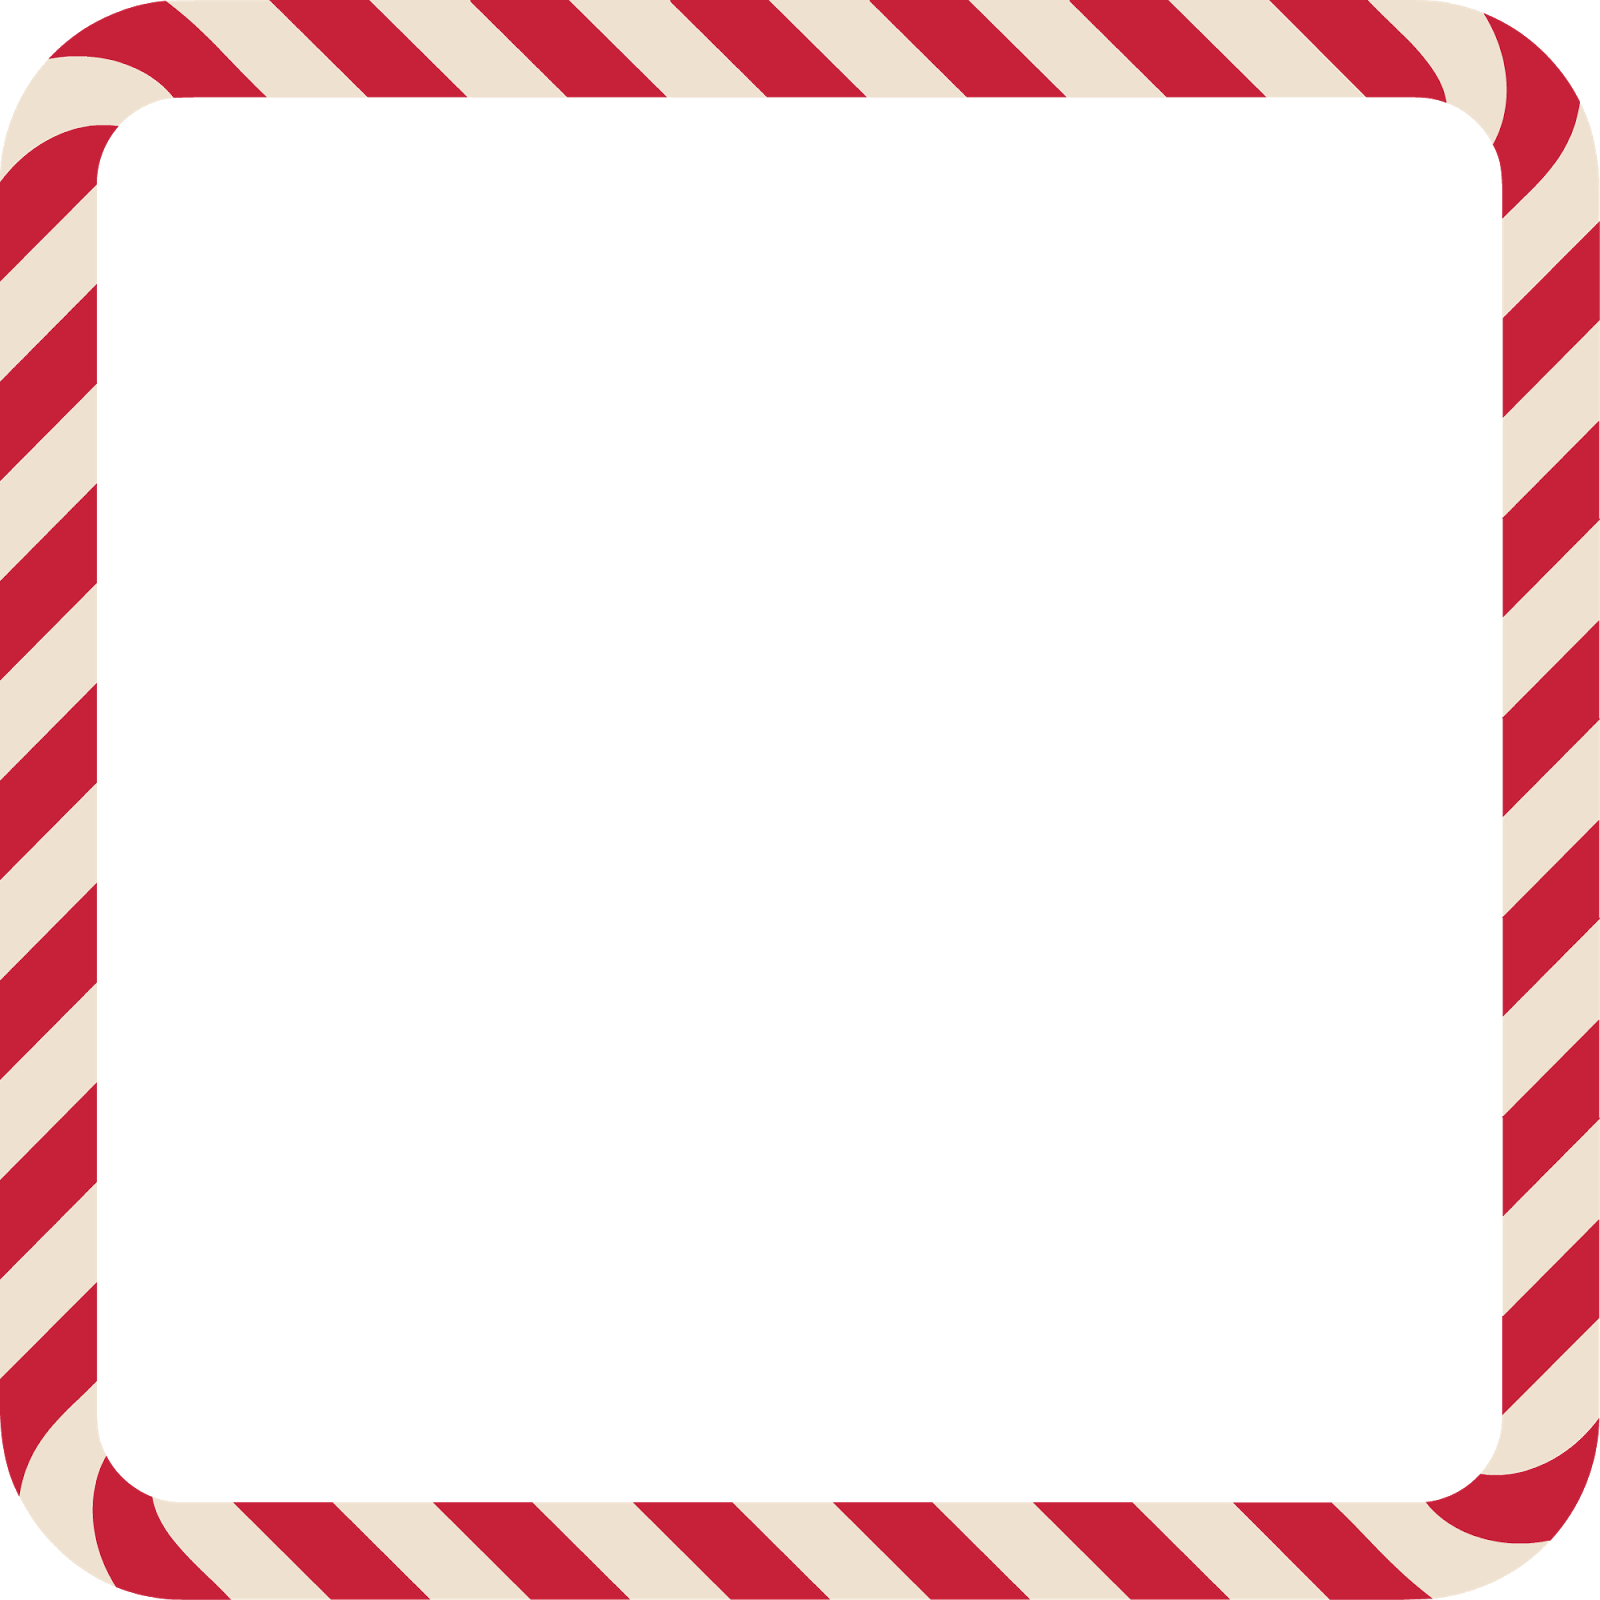 Wonderland In A Wardrobe: Candy Cane Frames Freebies!